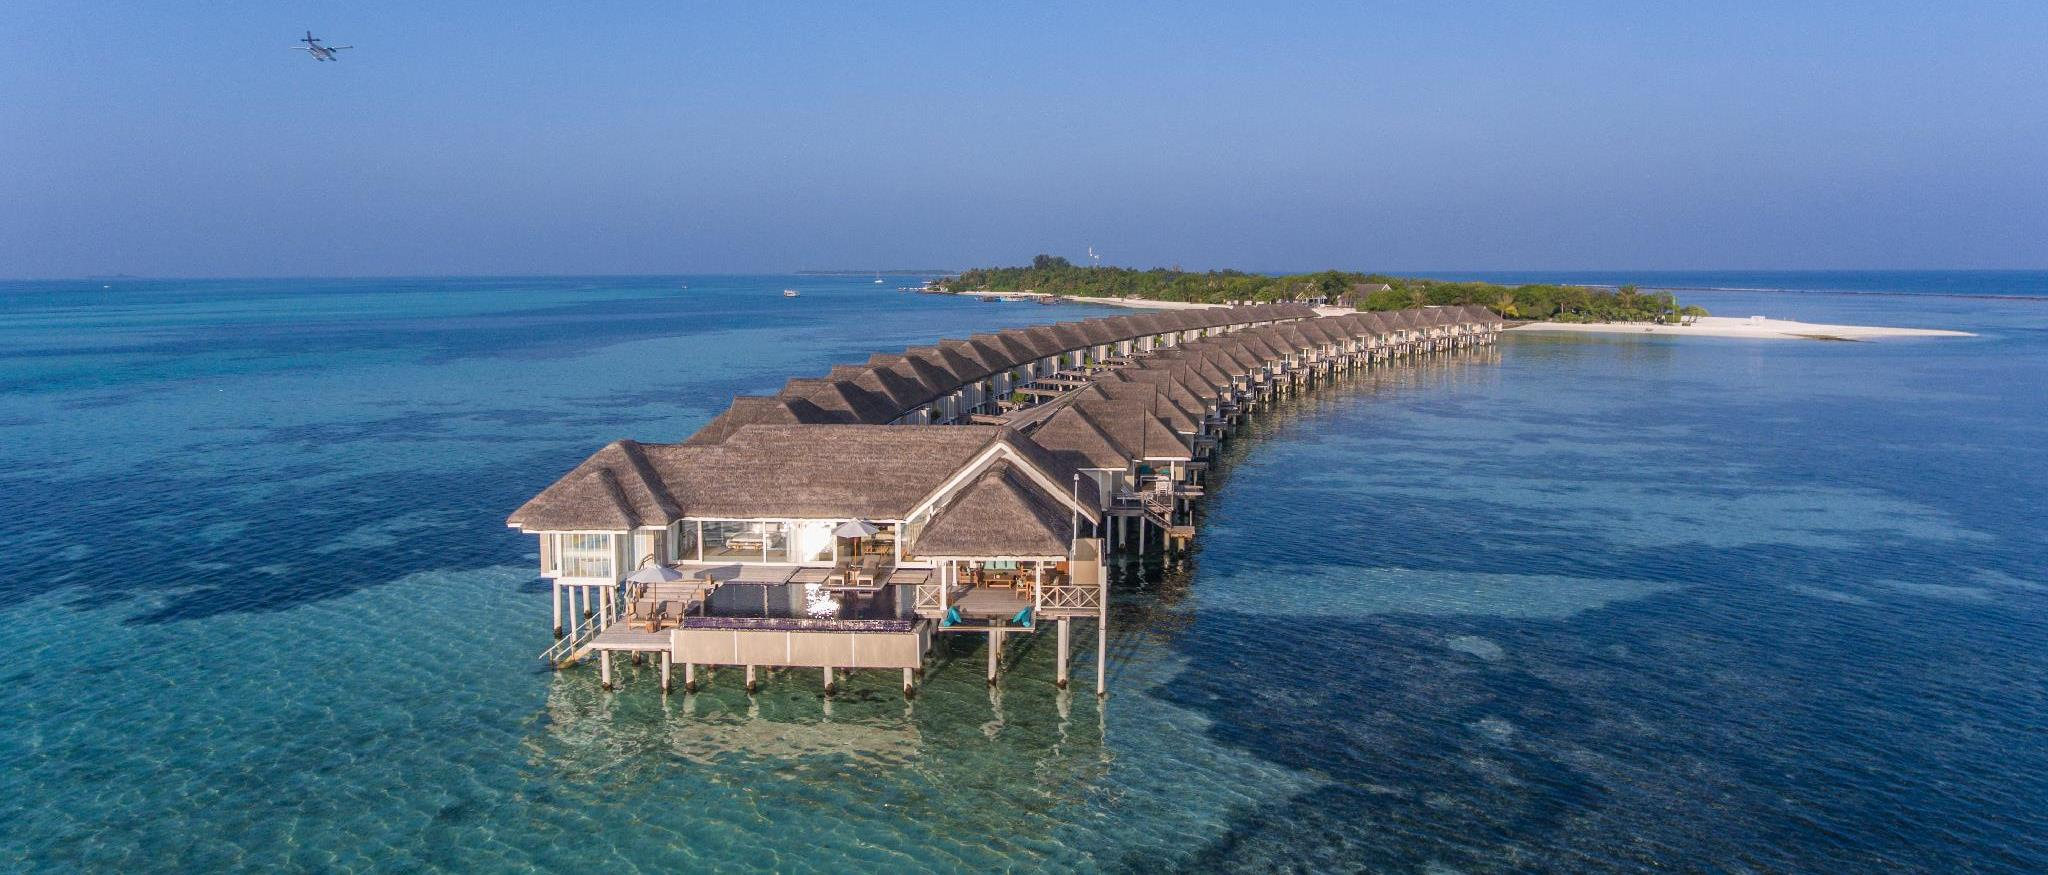 LUX South Ari Atoll Resort and Villas